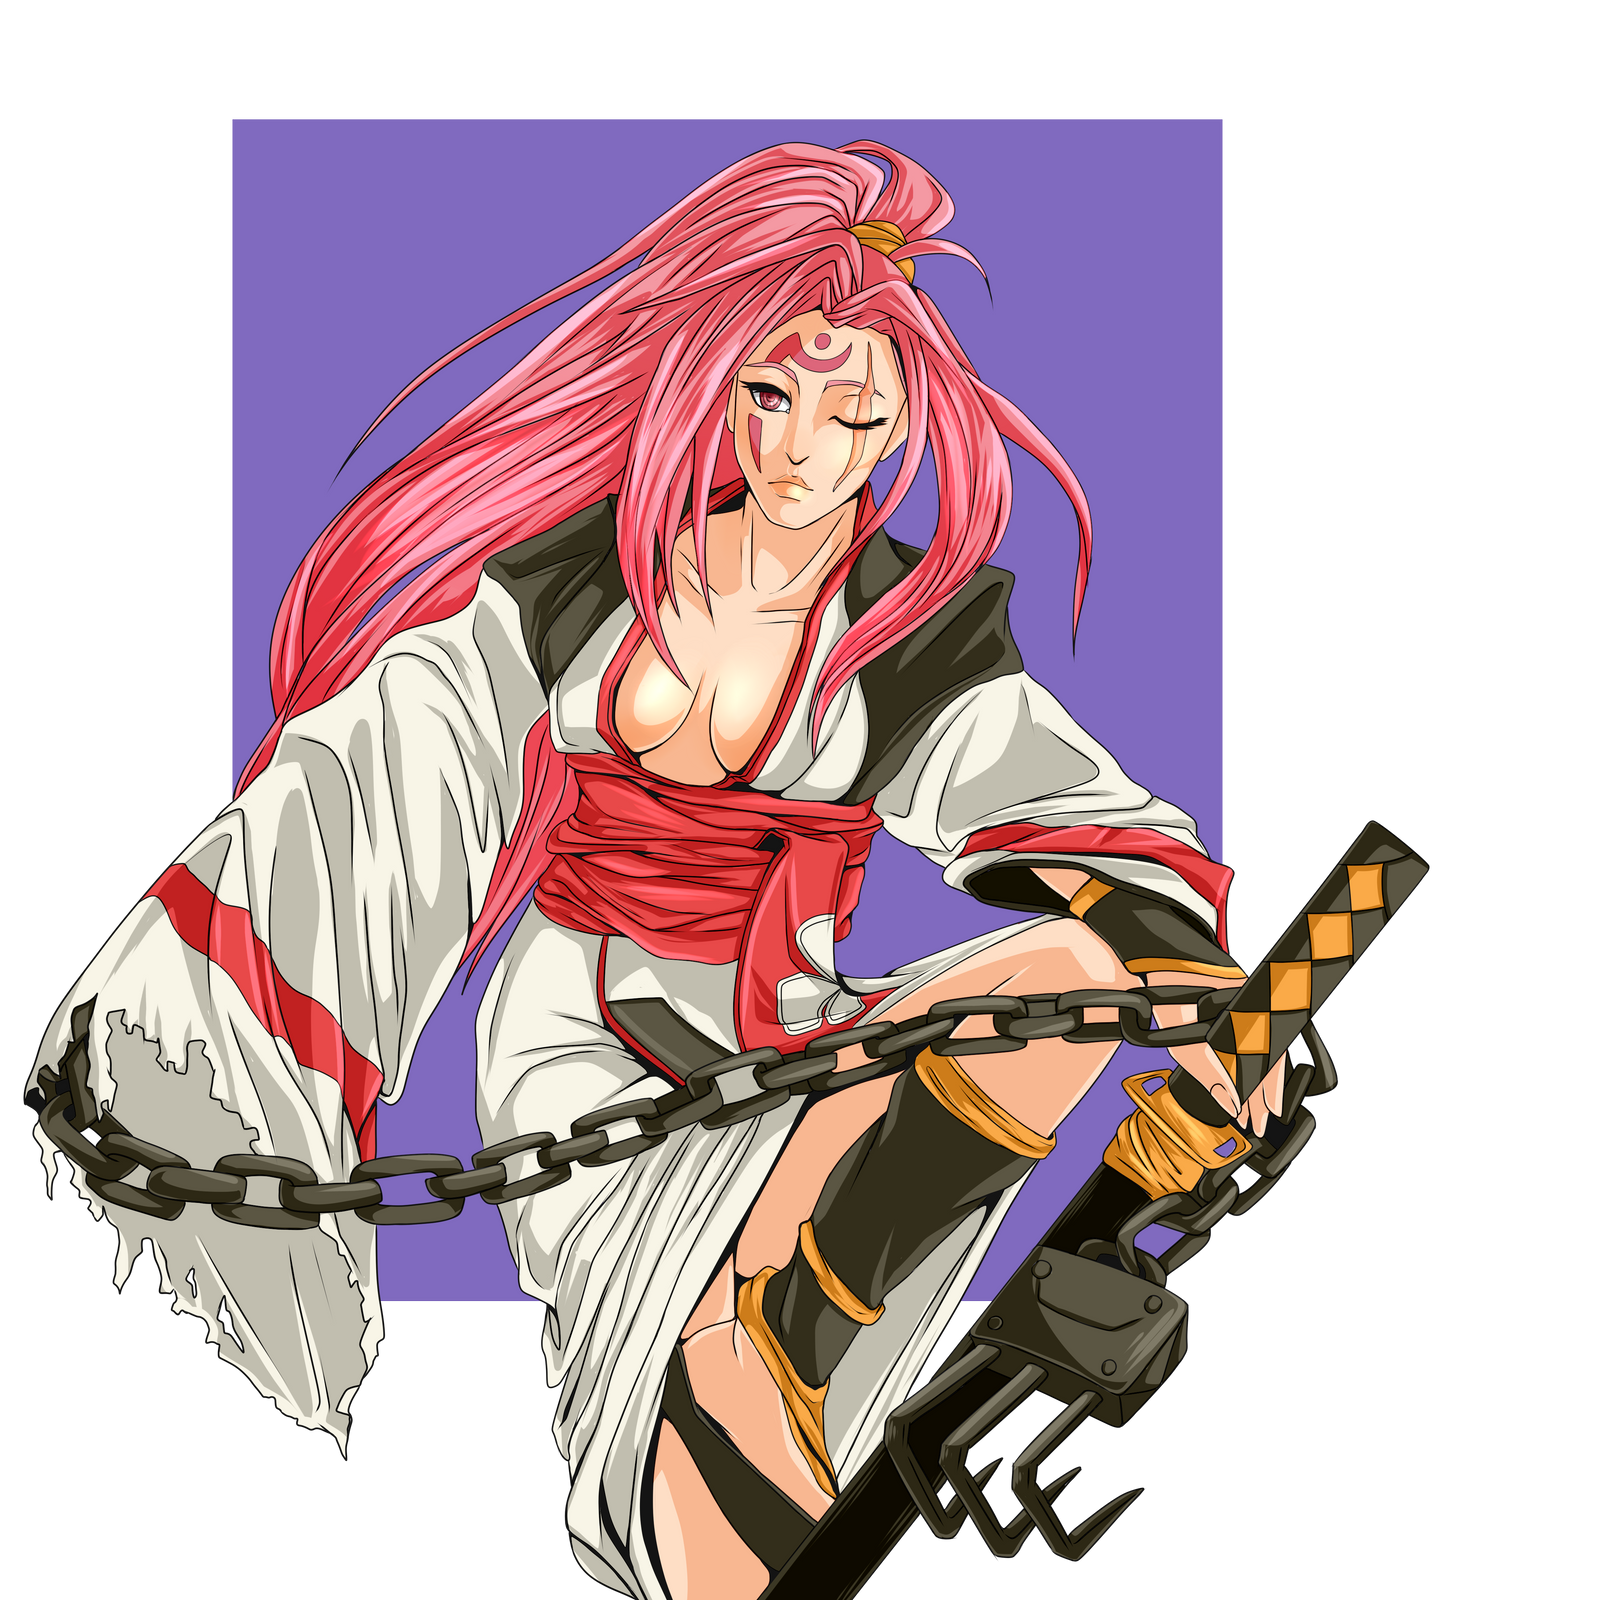 Guilty Gear Wallpaper: Baiken By MalkyTea On DeviantArt